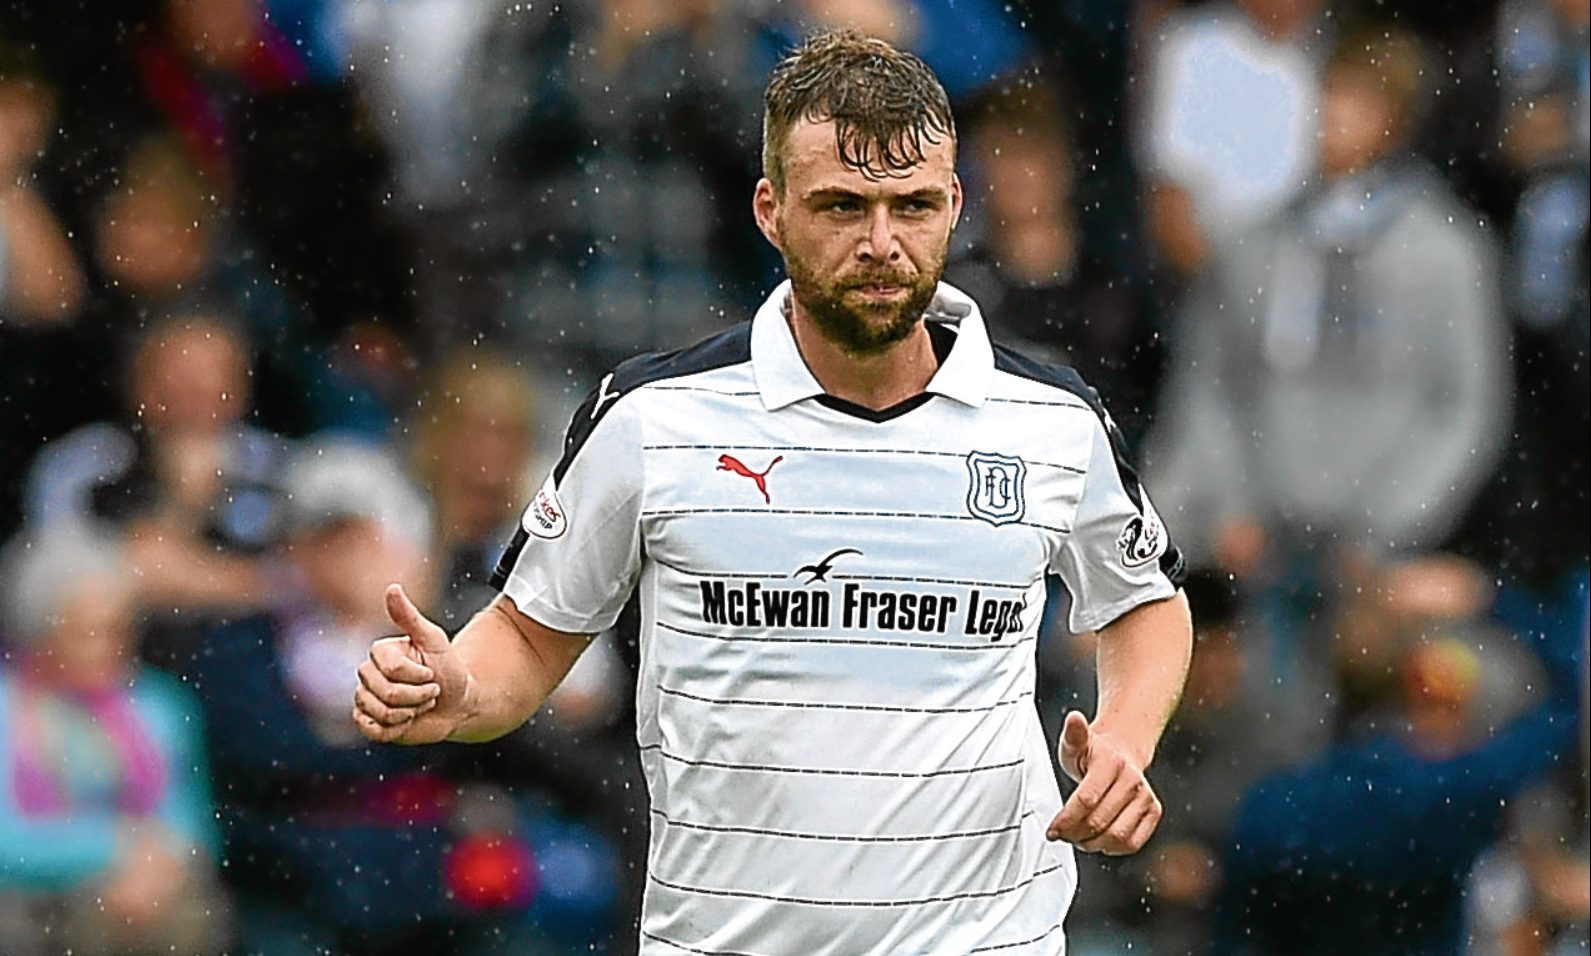 Dundee's Rory Loy in action against Ross County on the first day of the season. The striker has seen little action since then.